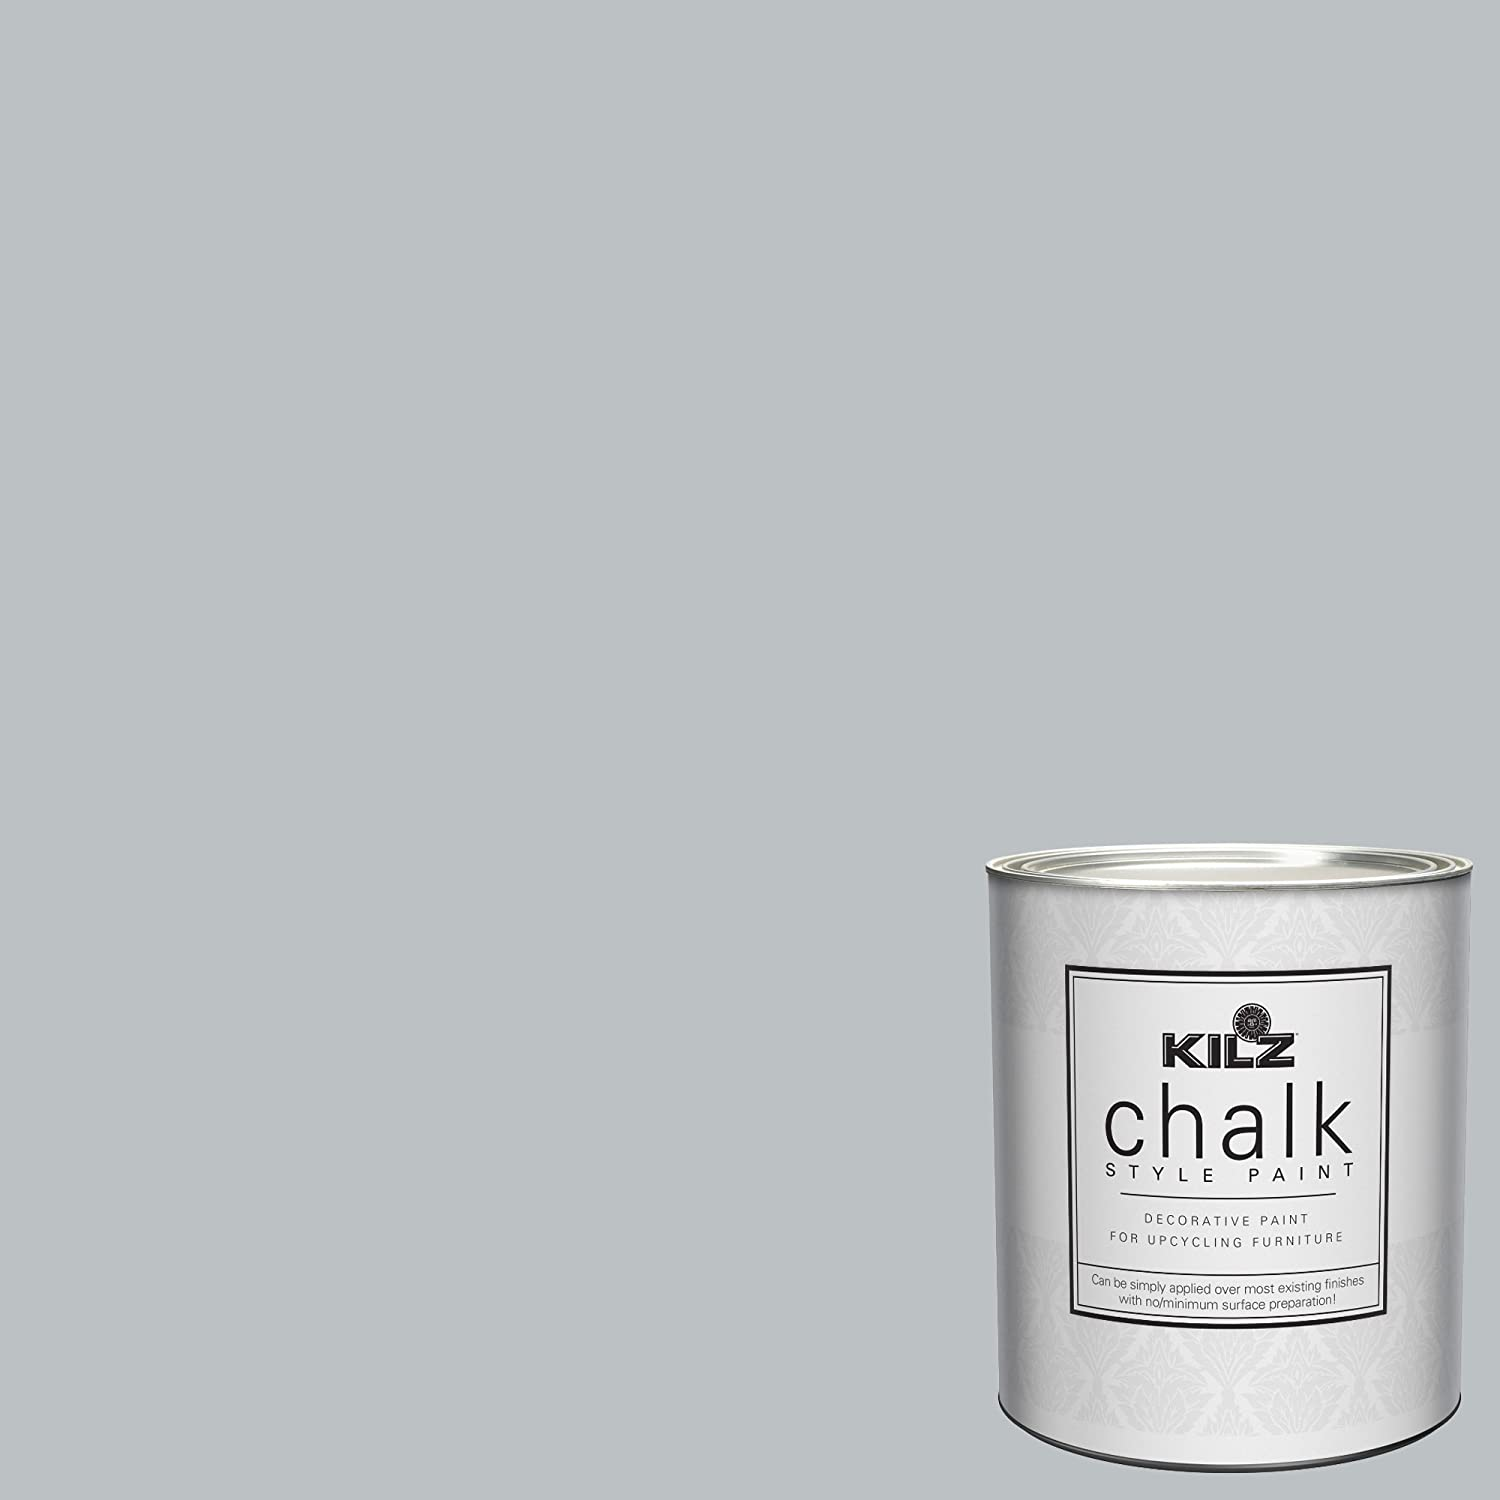 This blue grey chalk paint seems perfect for a Swedish Gustavian look. Kilz Platinum Ring chalk paint is a beautiful color to paint a cupboard, dresser, table, or furniture piece where you want a painted Swedish Gustavian Old World look!